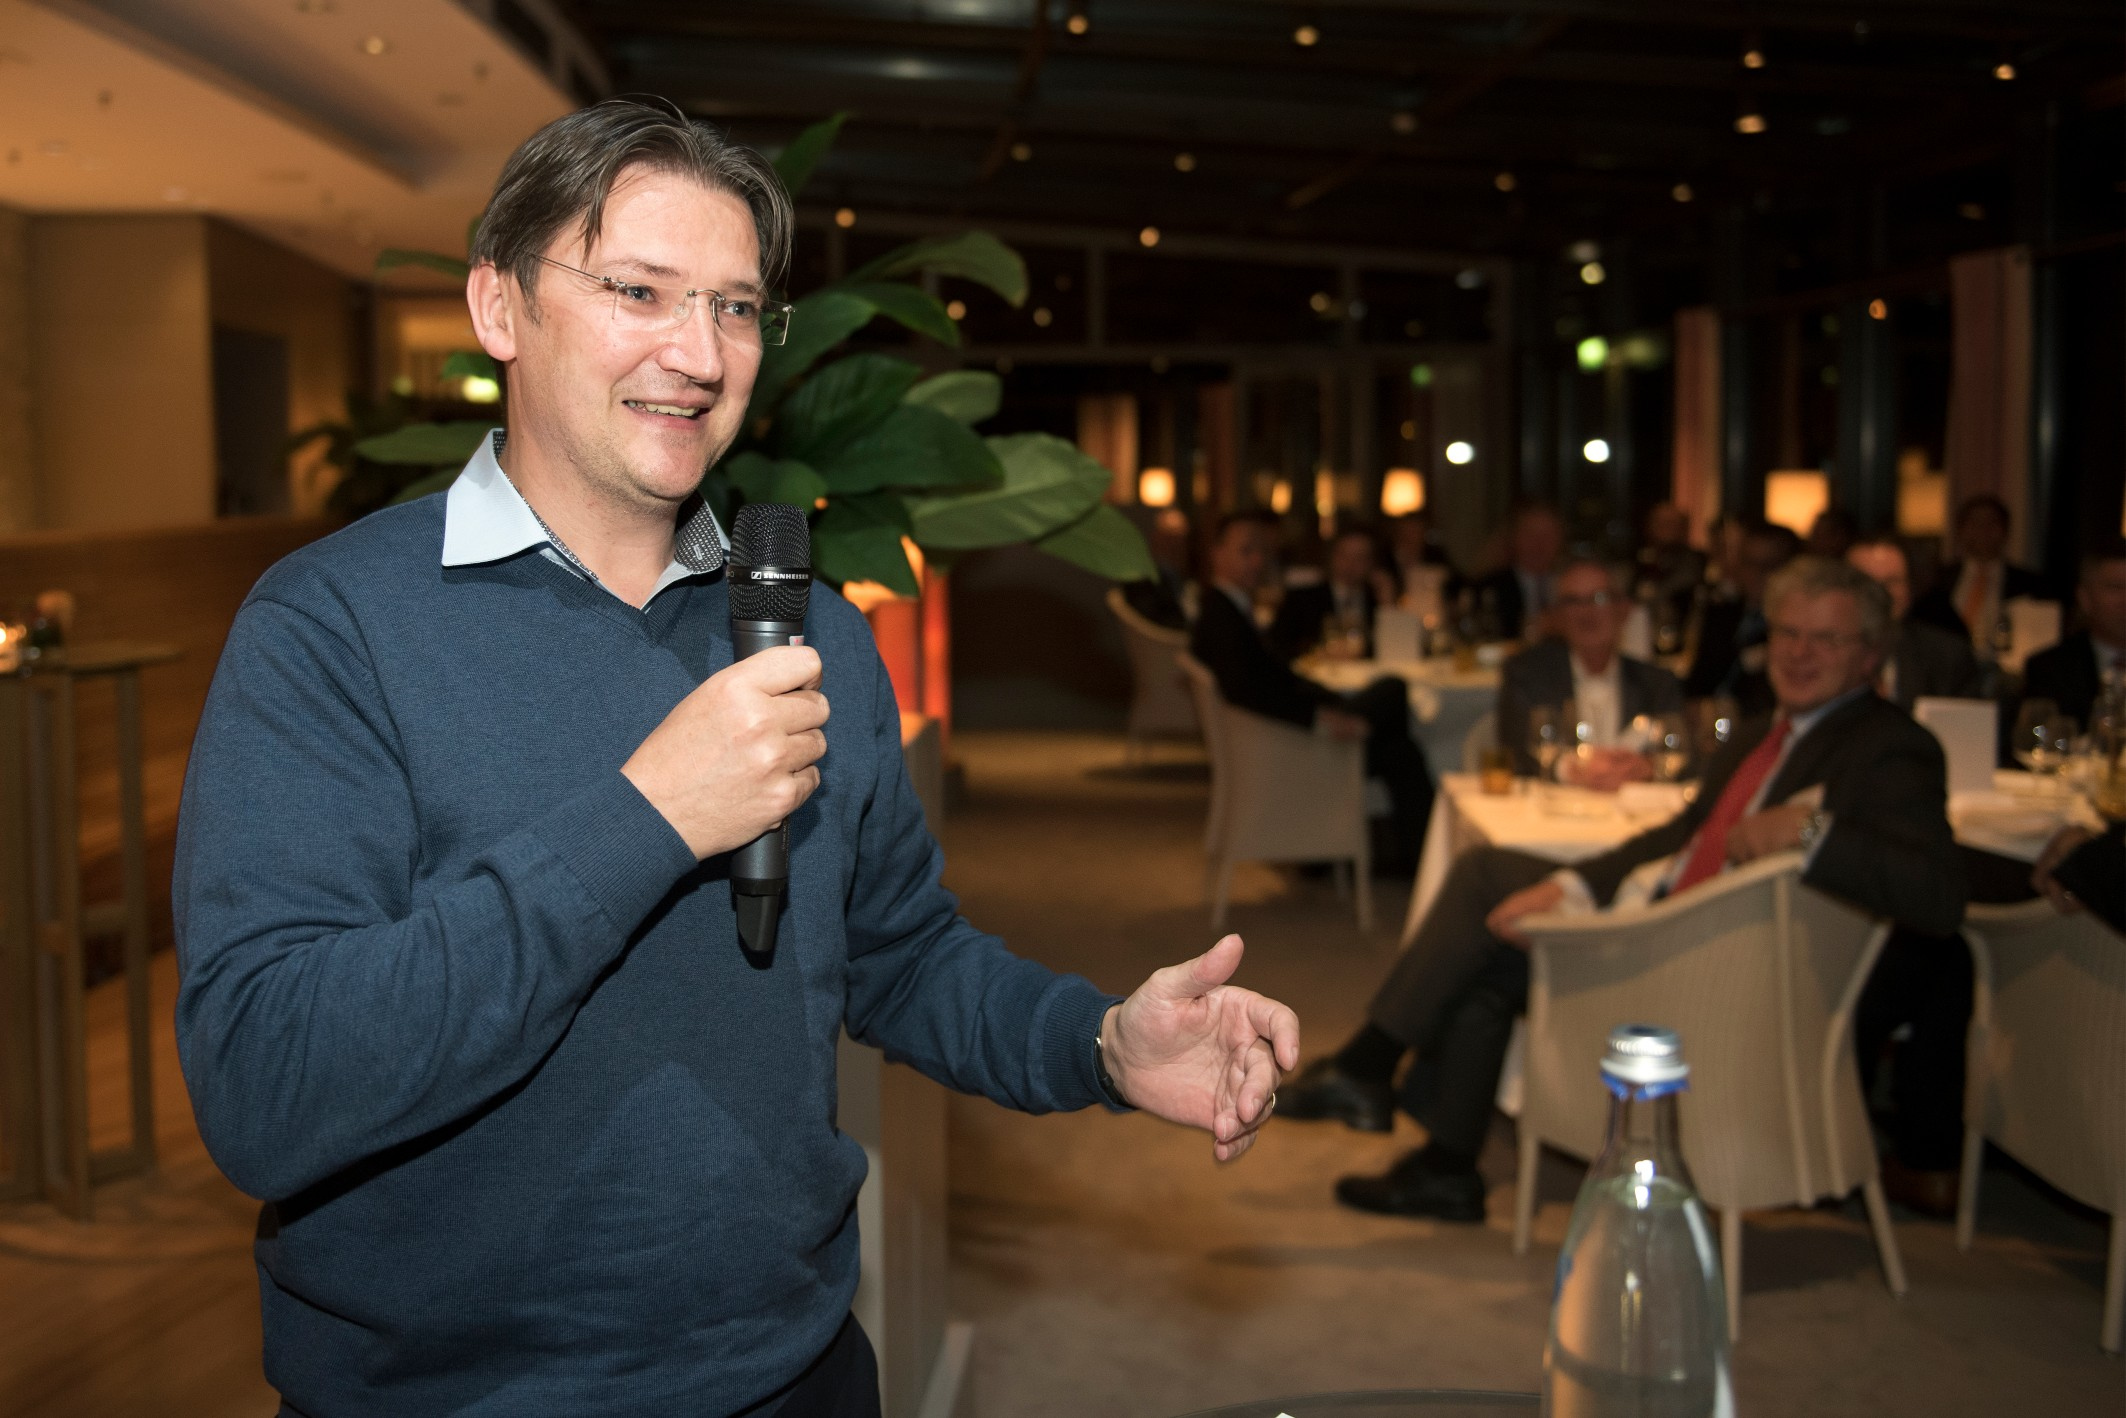 Johann Jungwirth, Chief Digital Officer at Volkswagen, adresses the crowd at the IZB VIP dinner in Wolfsburg.